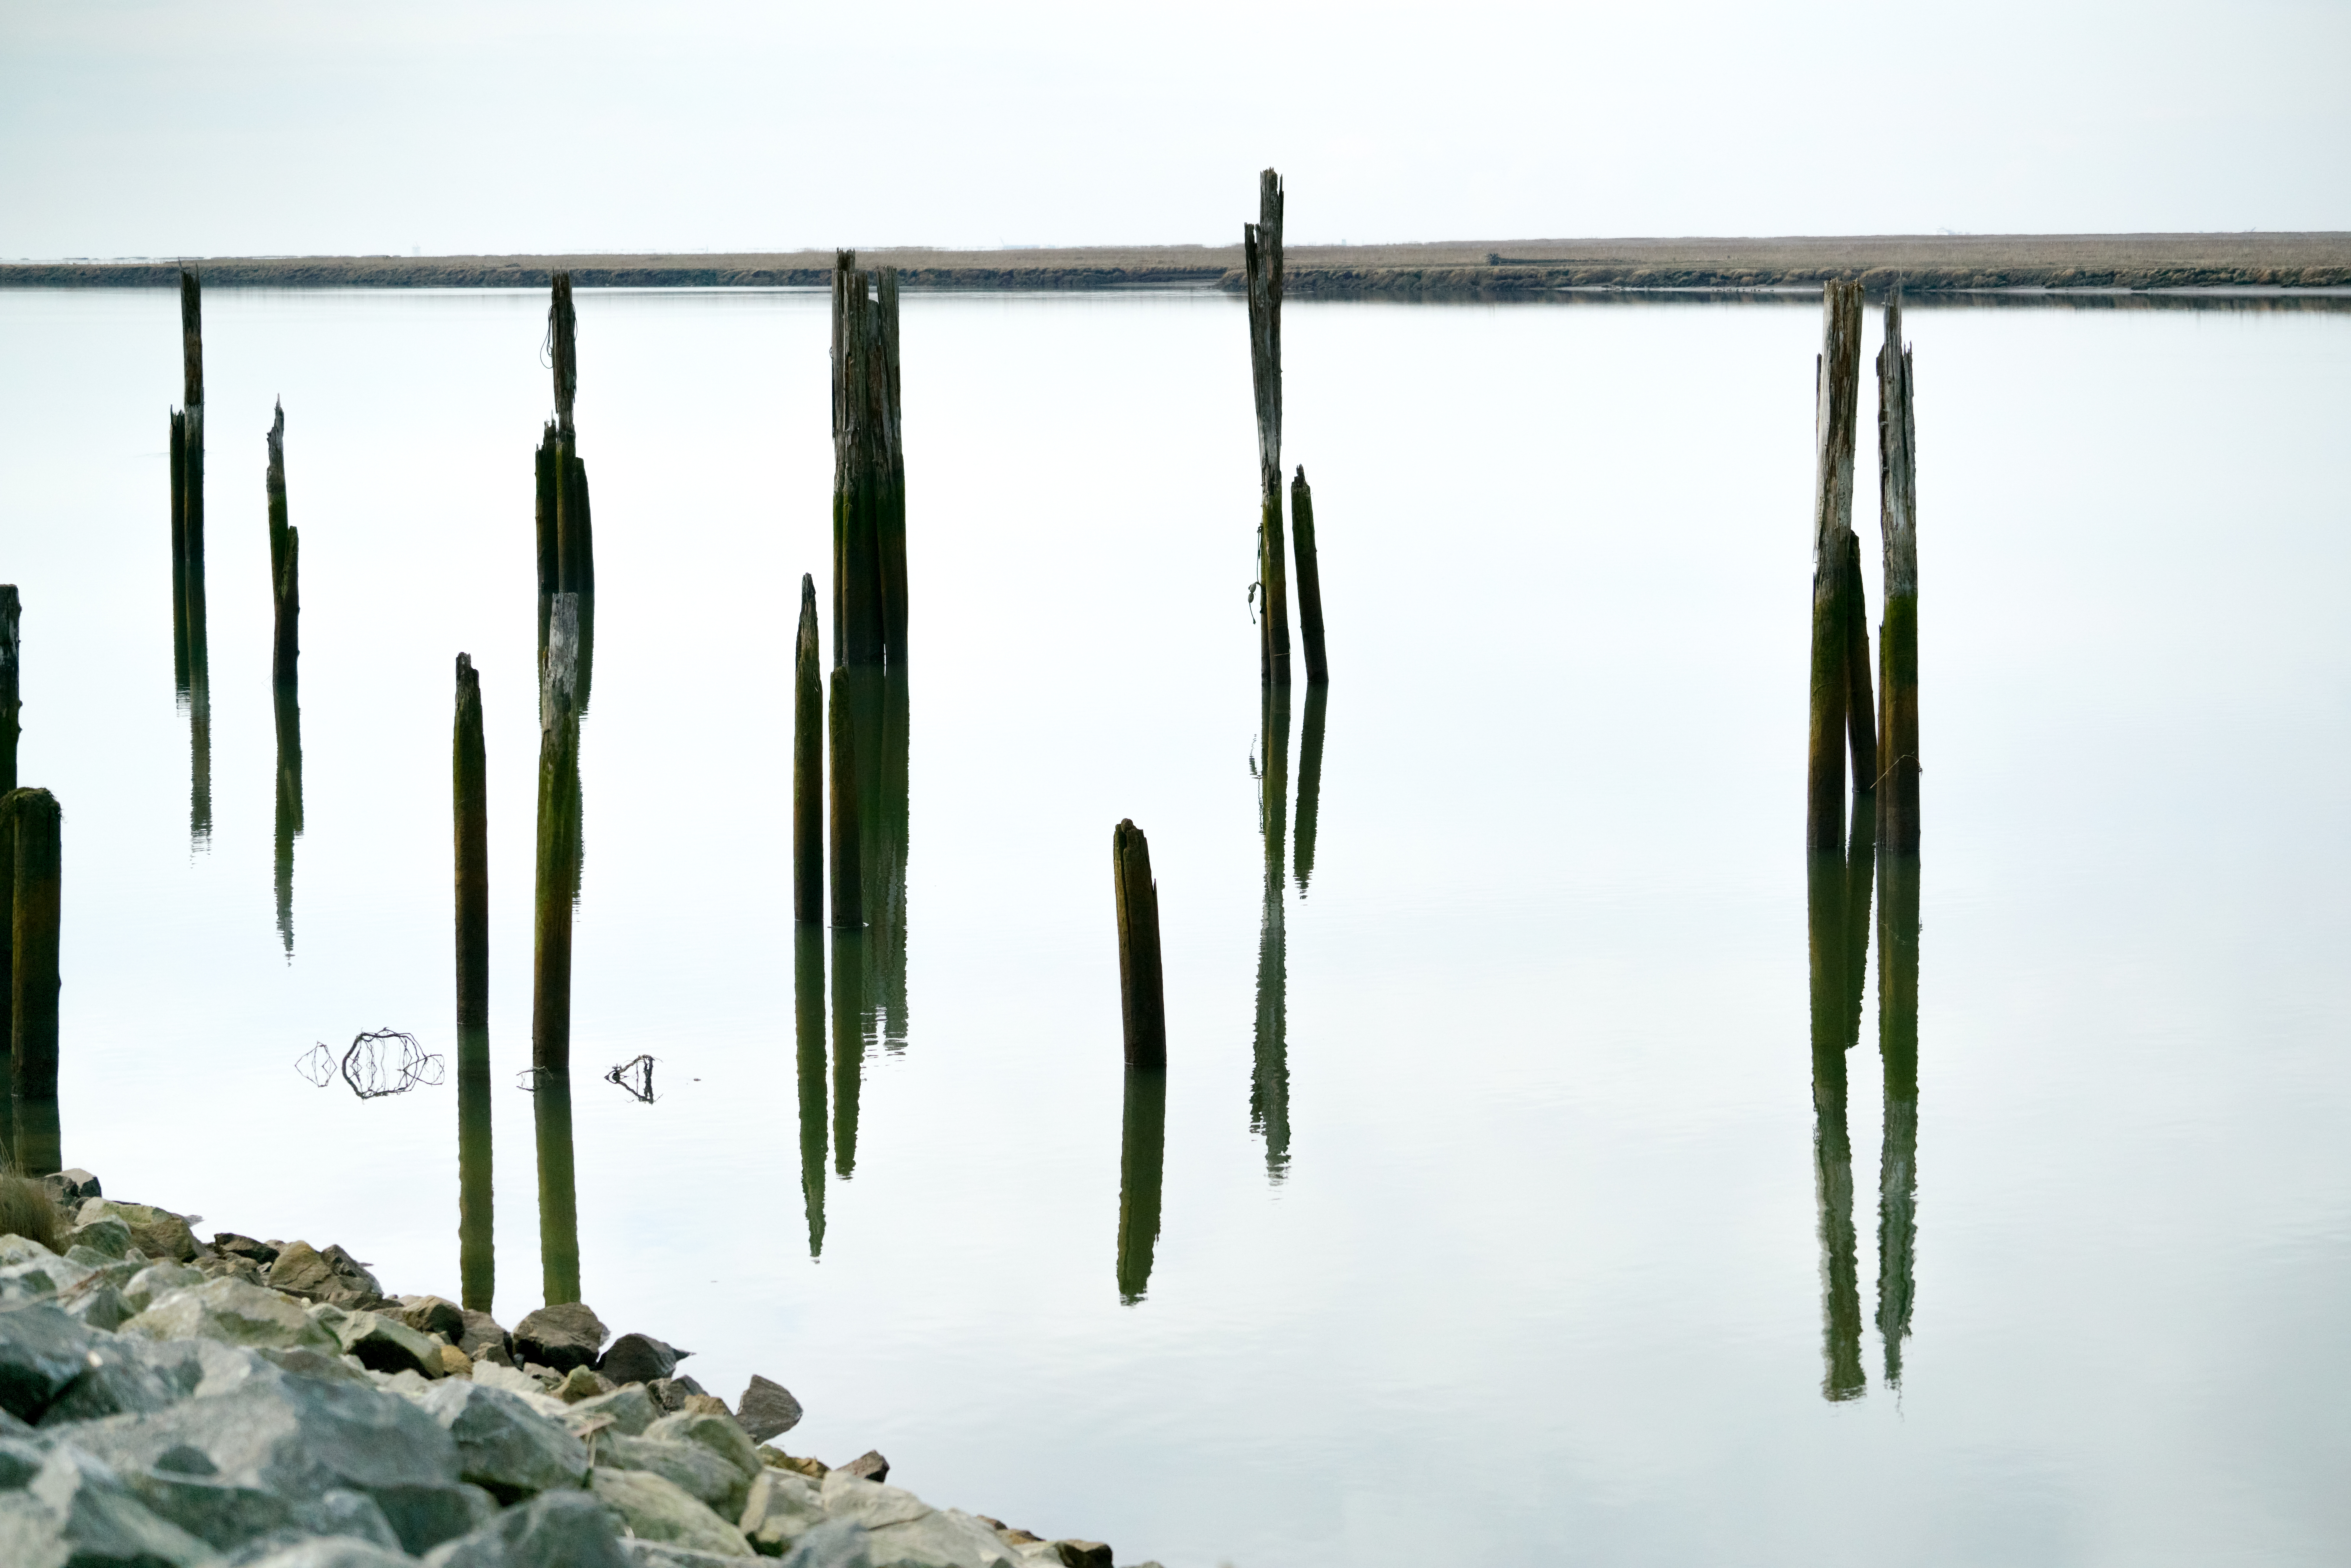 Abandoned wooden pillars by the river